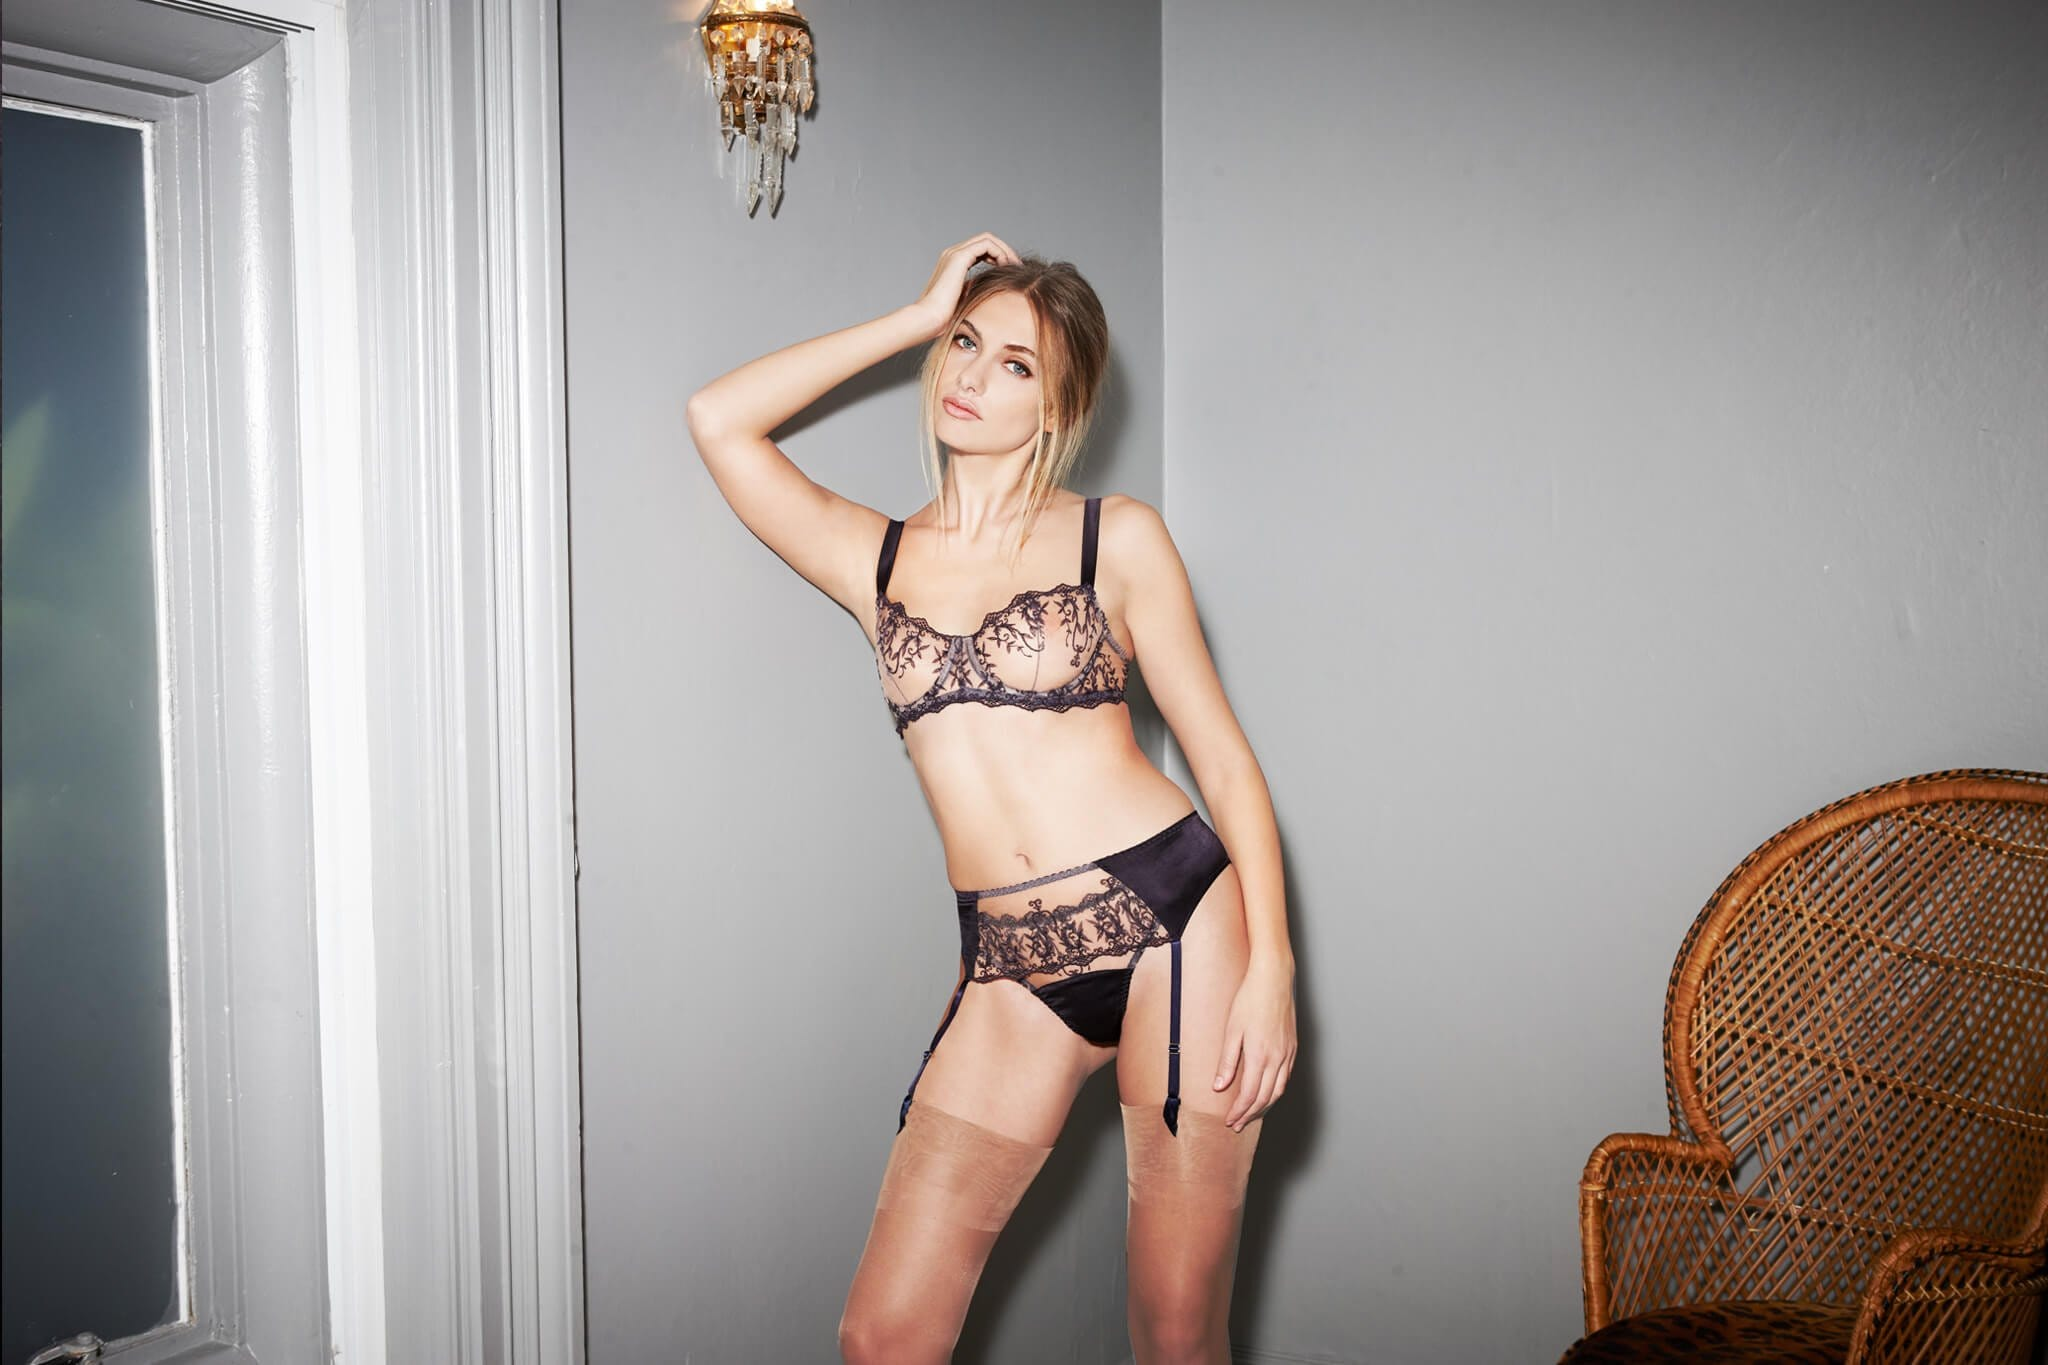 Muse Embroidered Sheer Balcony Bra from Luxury Lingerie Designer Fleur of England